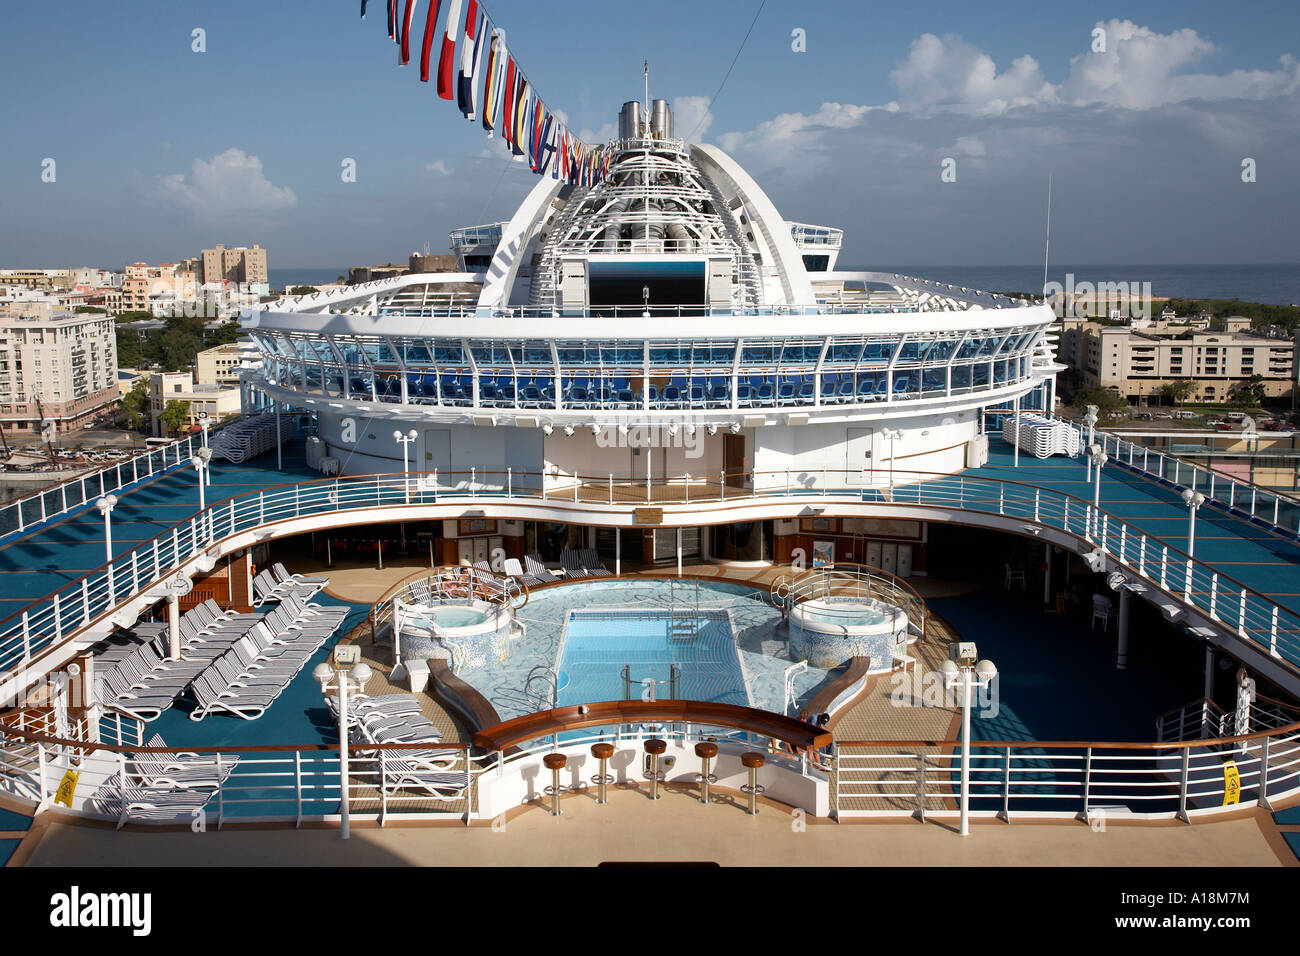 view across the top deck of the